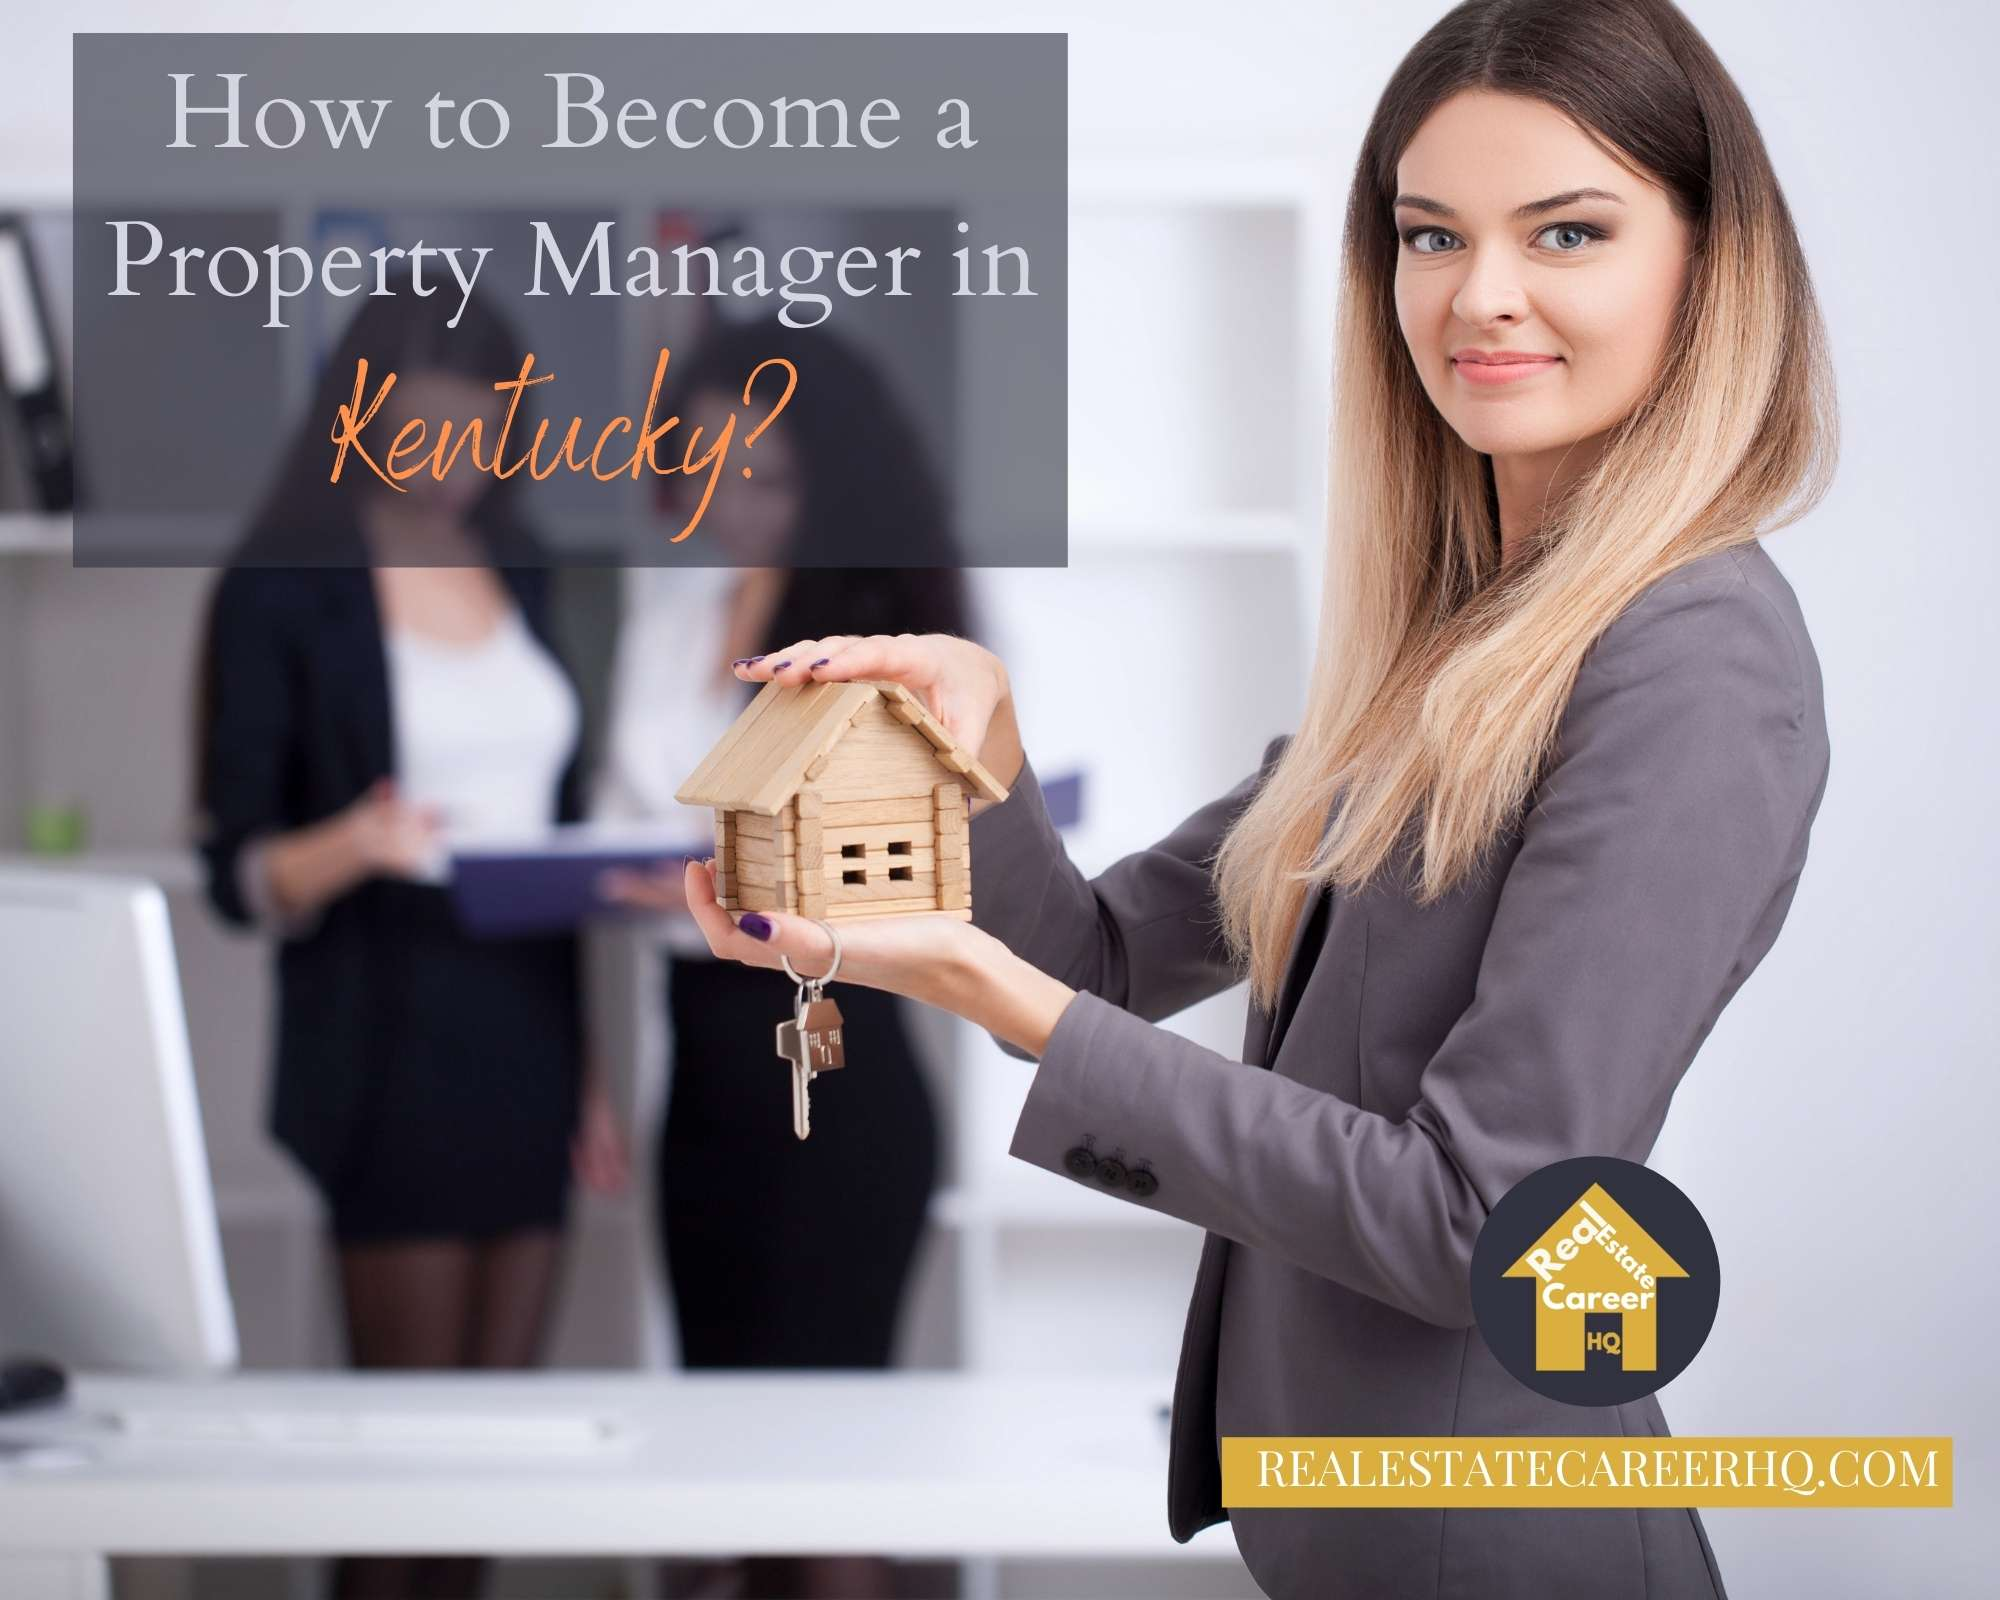 How to become a property manager in Kentucky